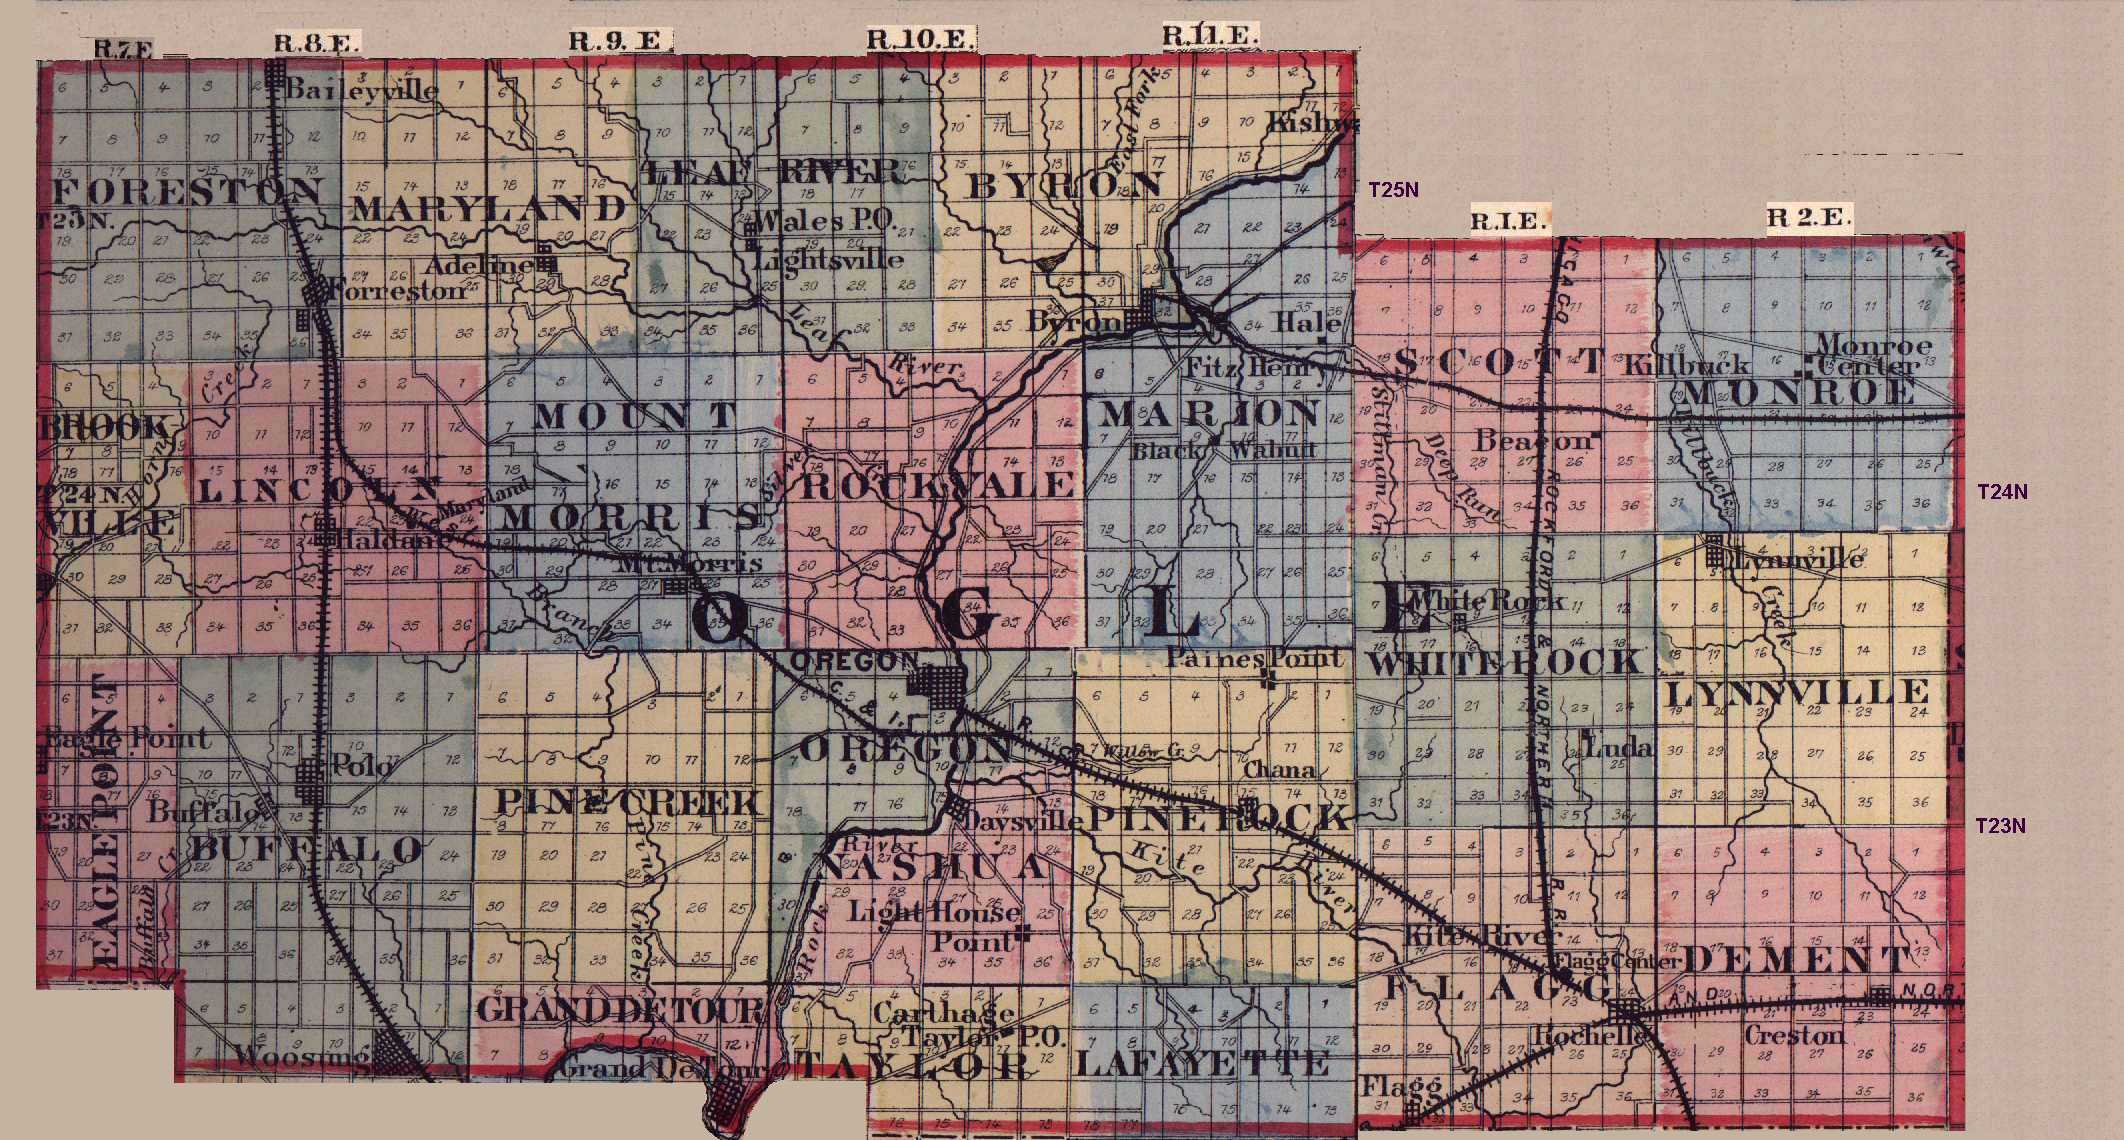 Illinois ogle county forreston - 7 5 Minute Topographic Maps In Ogle County Identifies Cemeteries Atlases Of Winnebago Boone And Ogle Counties